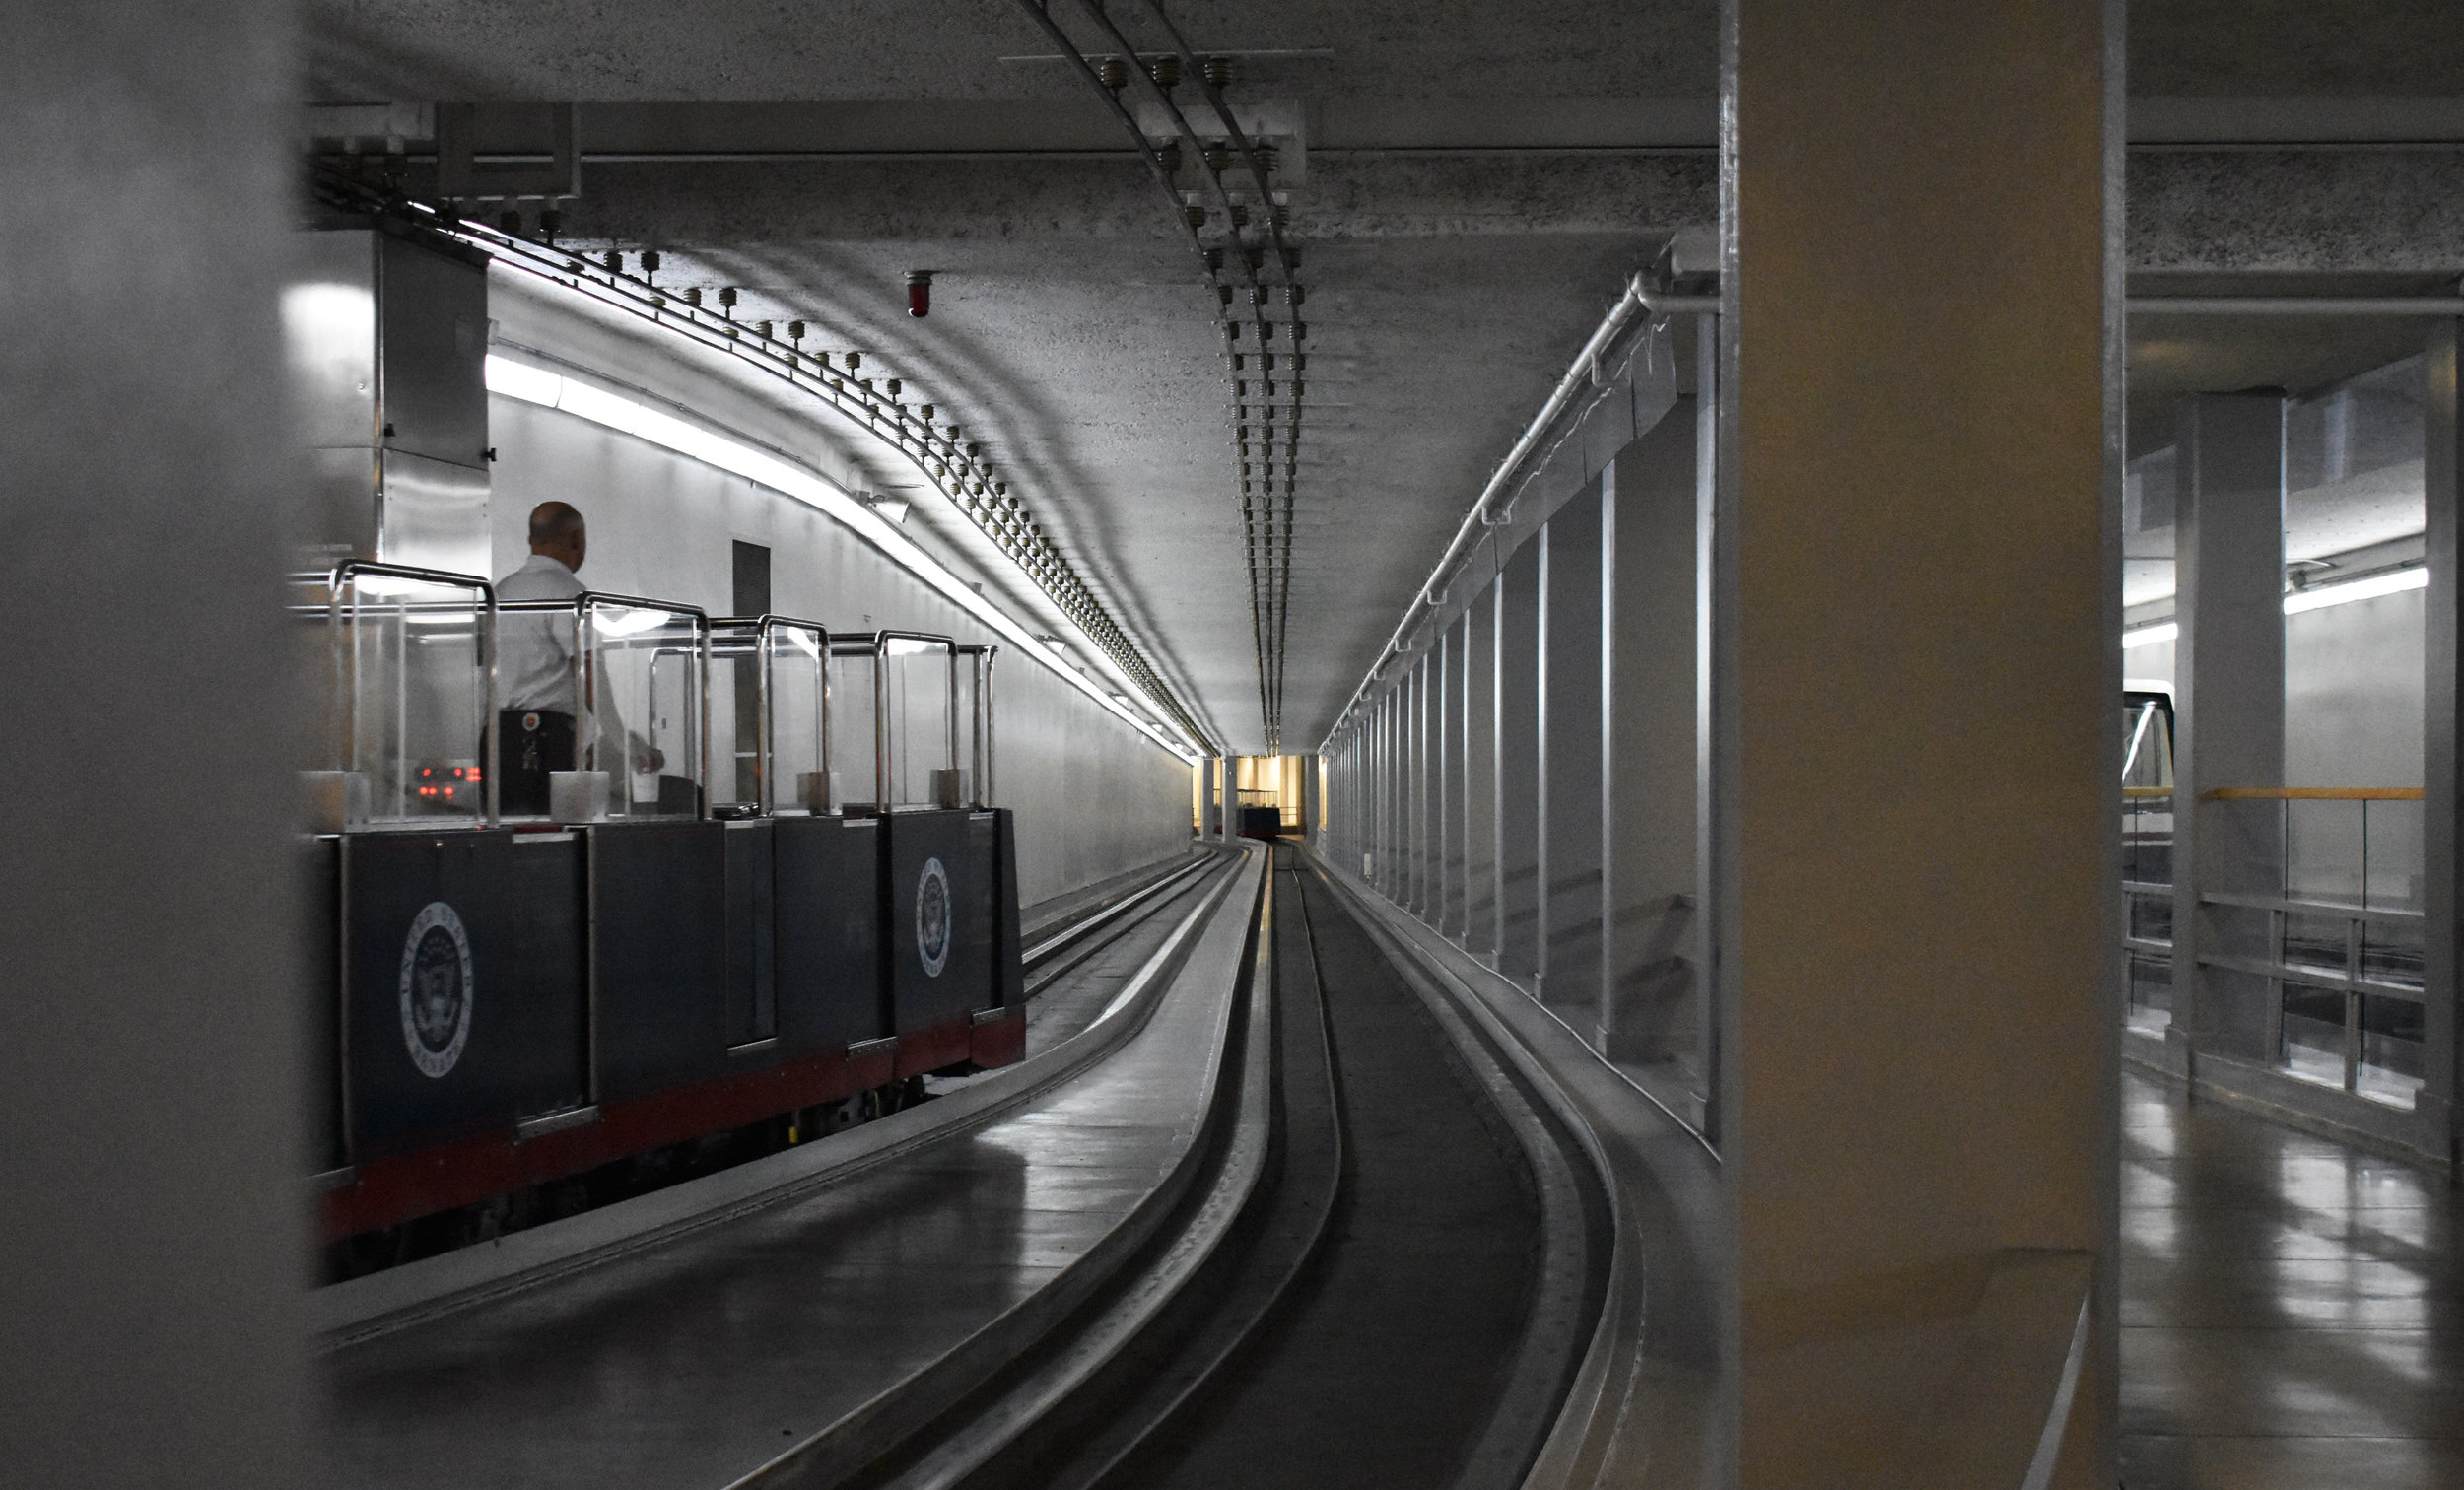 A man operates a train on the Senate subway system in the basement of the U.S. Capitol in Washington, Thursday, Jan. 25, 2018. (Lindsey Leake/American University)